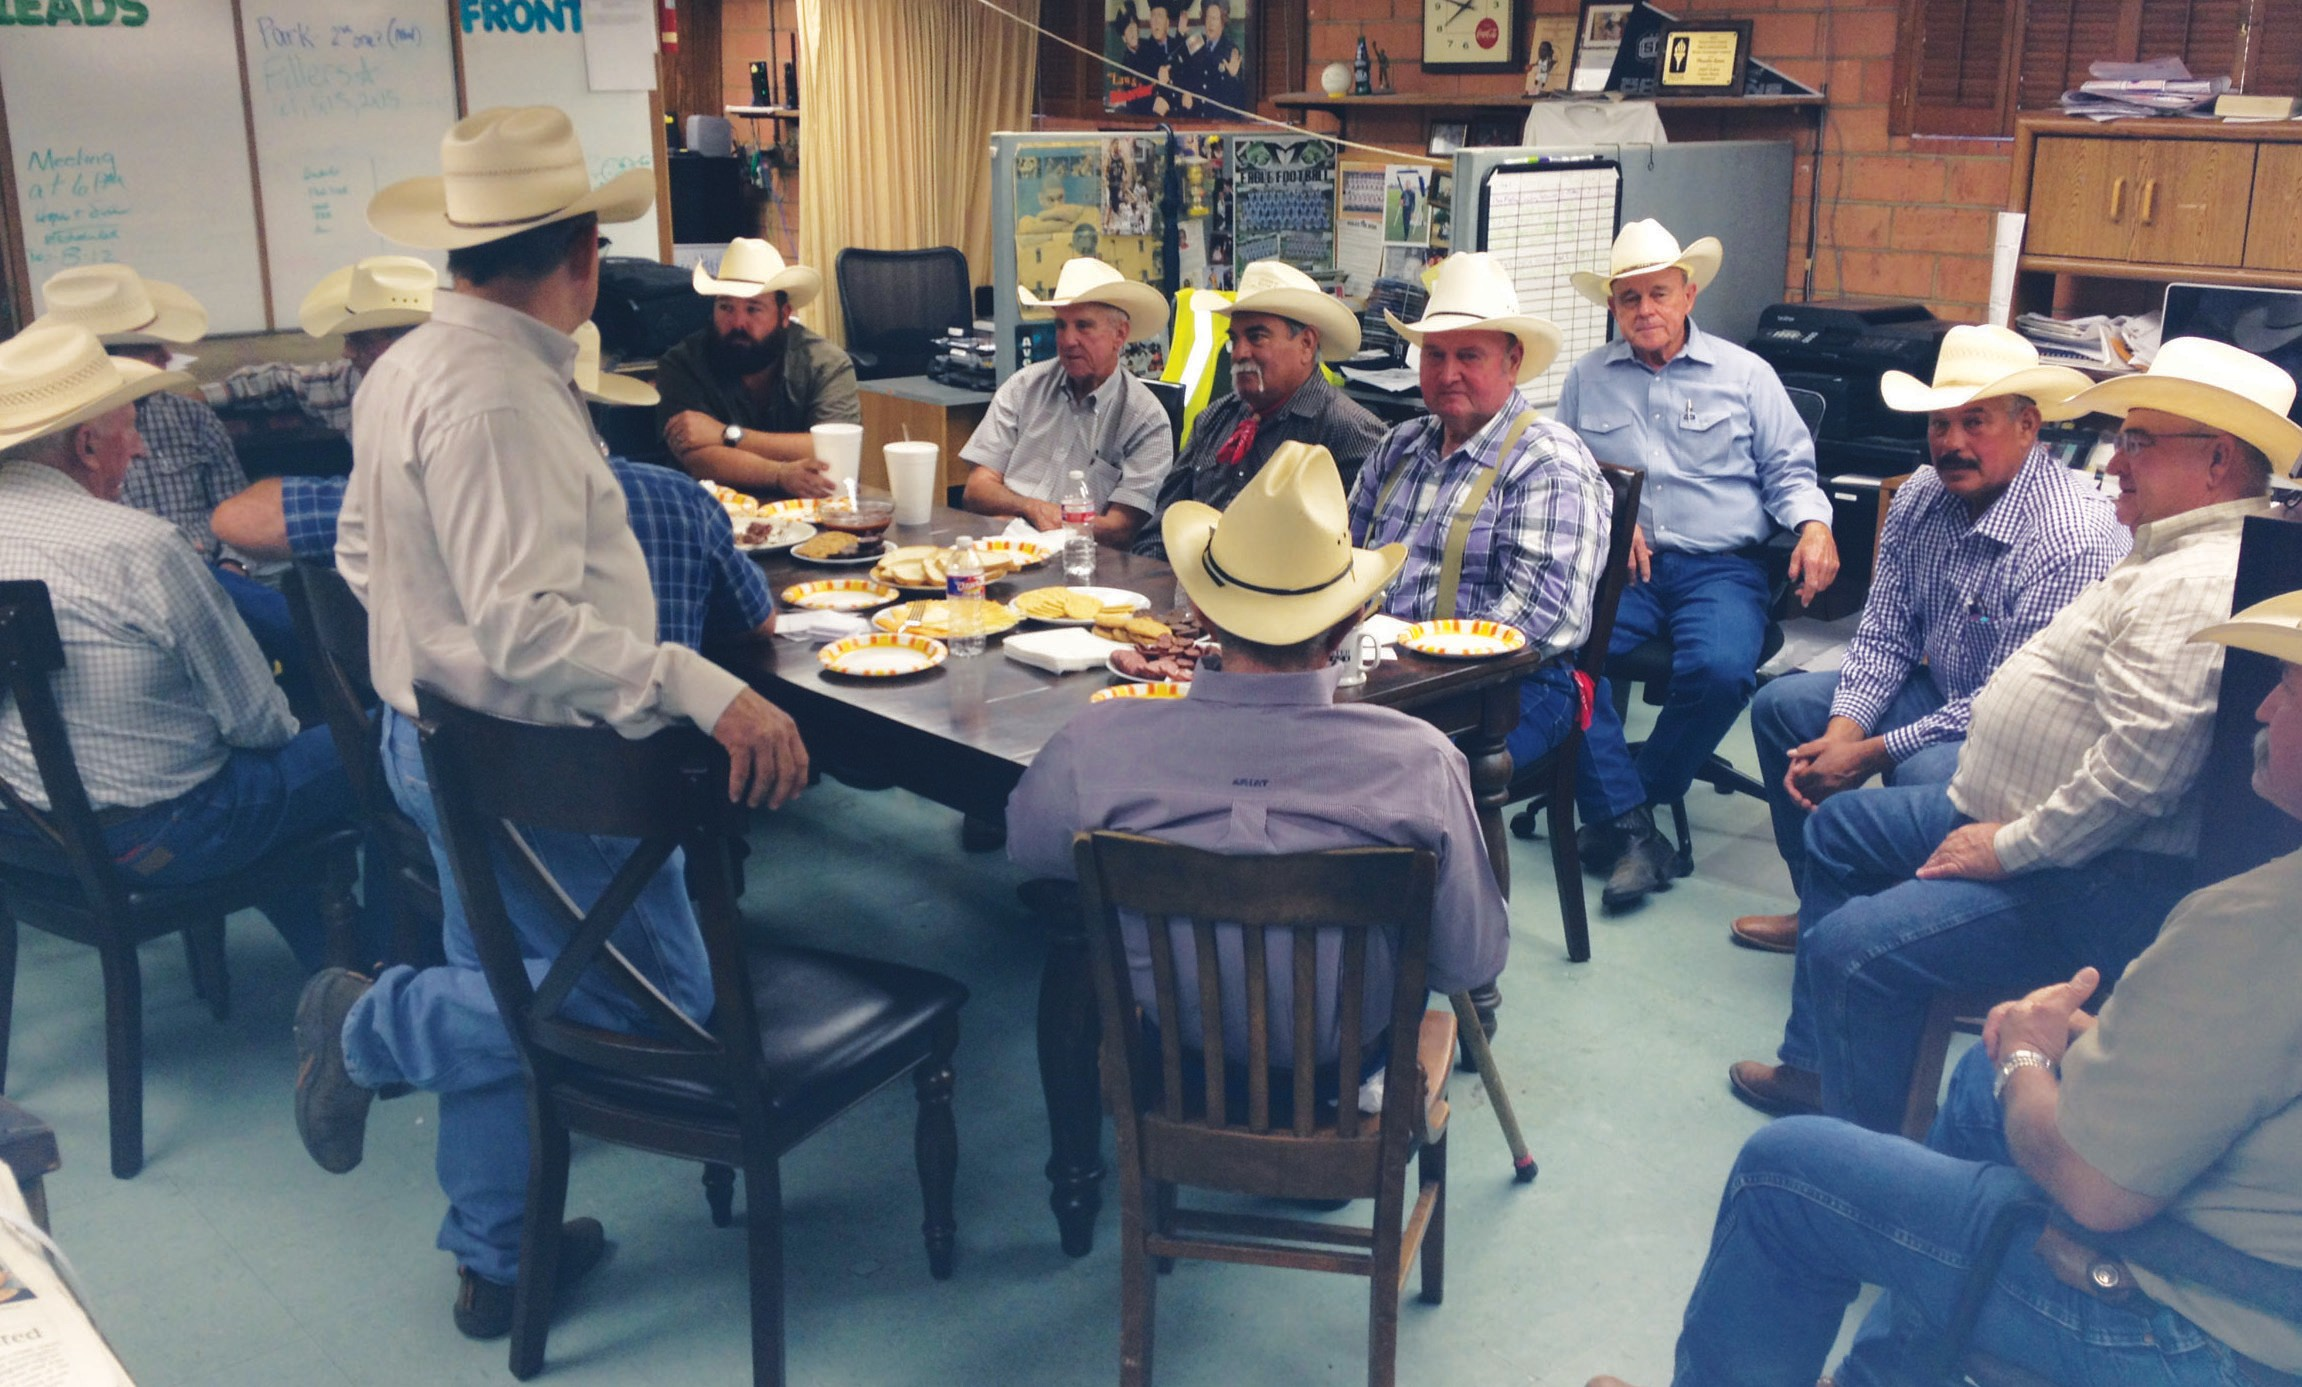 Each year former Cowboys of the Year meet at the Pleasanton Express to choose the next recipient as well as the new inductees into the South Texas Cowboy Hall of Fame. Sixteen made it to the meeting and gathered around the table. From bottom right, clockwise are Leroy Krueger ('00), Tommy Henry ('86), Chairman Joel McDaniel ('90), David McDaniel ('97), Robert Bryan ('84), Roy Hindes III ('04), Benny Zuniga (91), Clint Hindes ('01), Johnny Schrutka ('05), Roy Alonzo ('13), Charles Maddox ('87), Billy Wayne Kaiser ('07), Gilbert Gonzales ('92) and David Kaiser ('09). Out of camera shot were Darryl Ashley ('94) and Mickie Clark ('03).